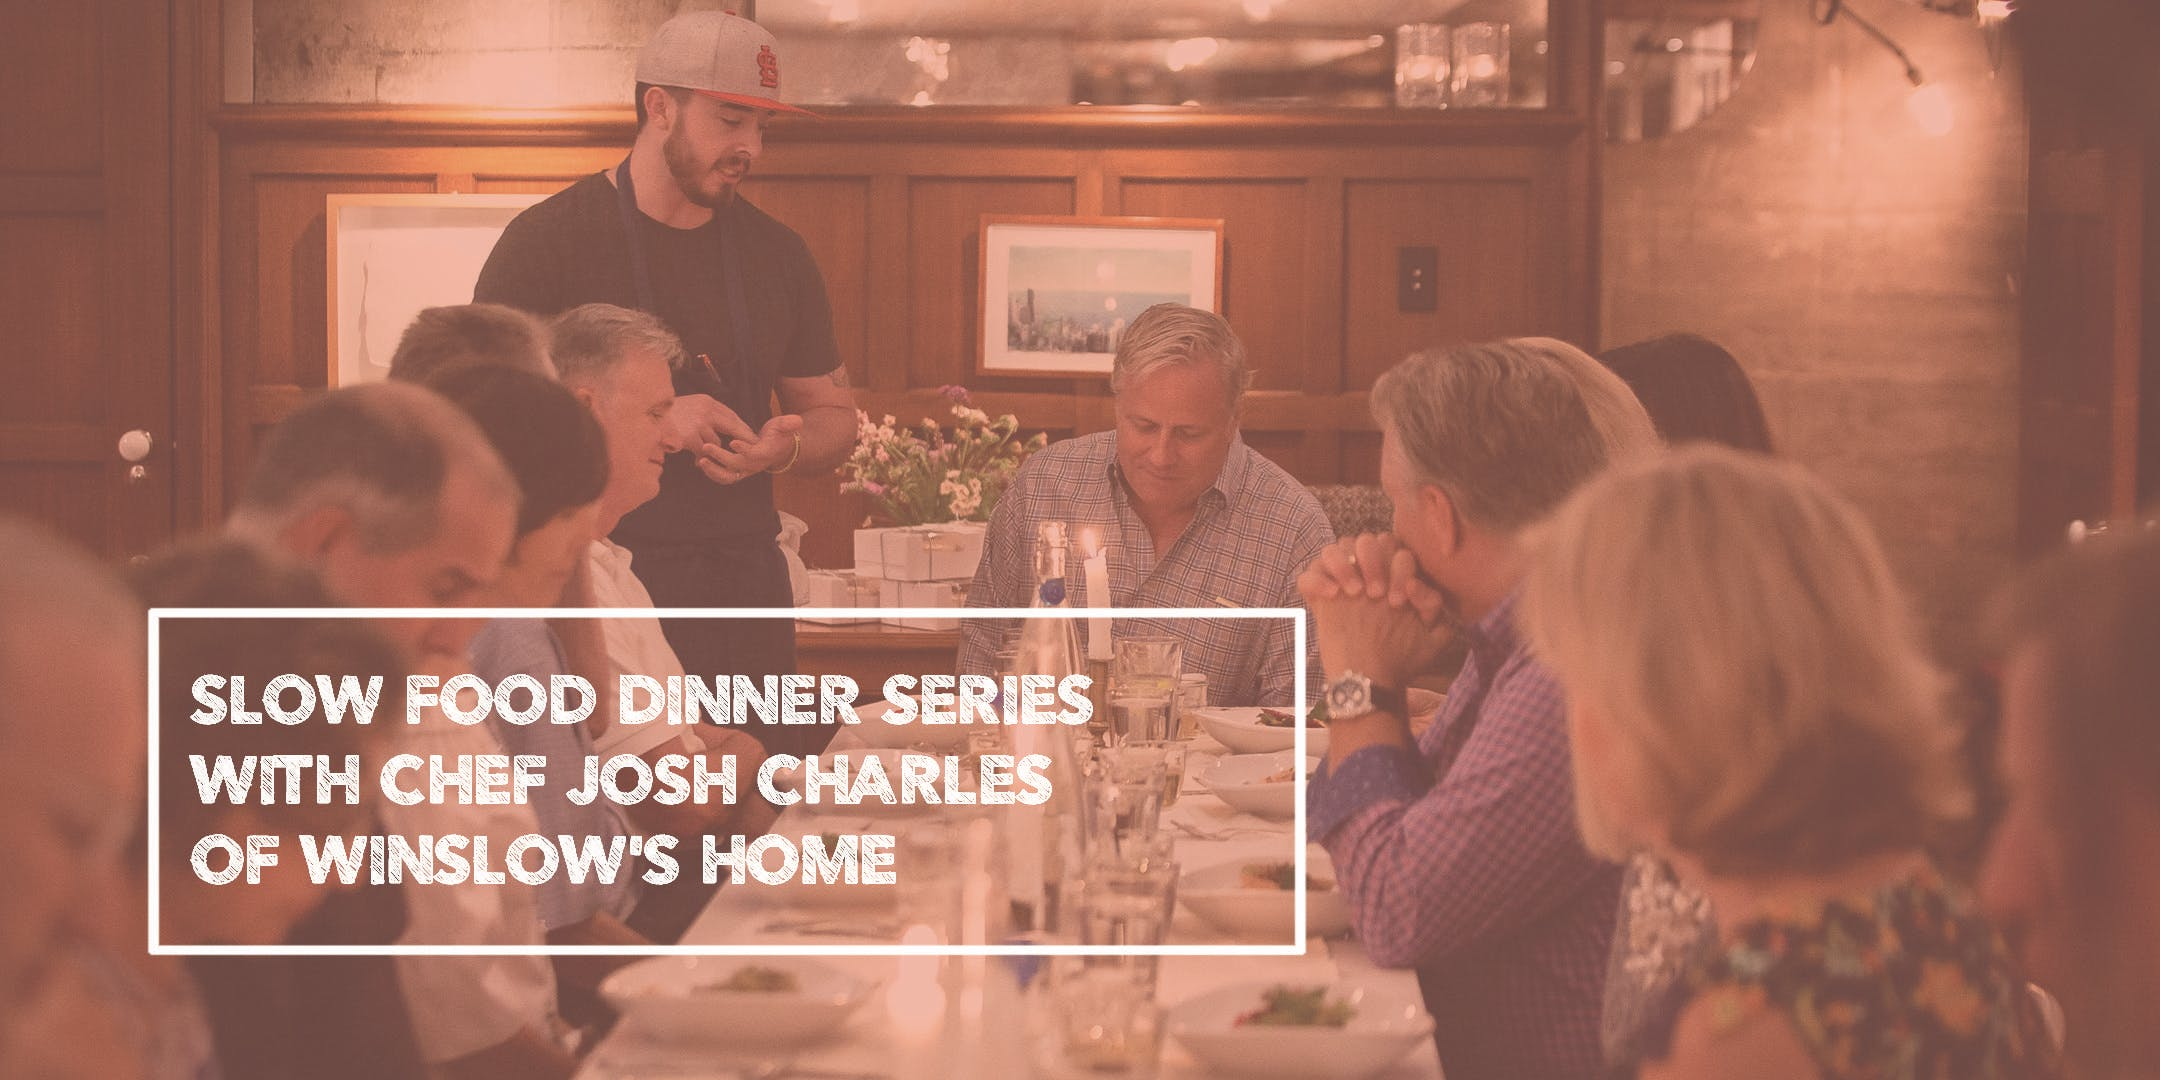 The Slow Food Dinner with Chef Josh Charles o